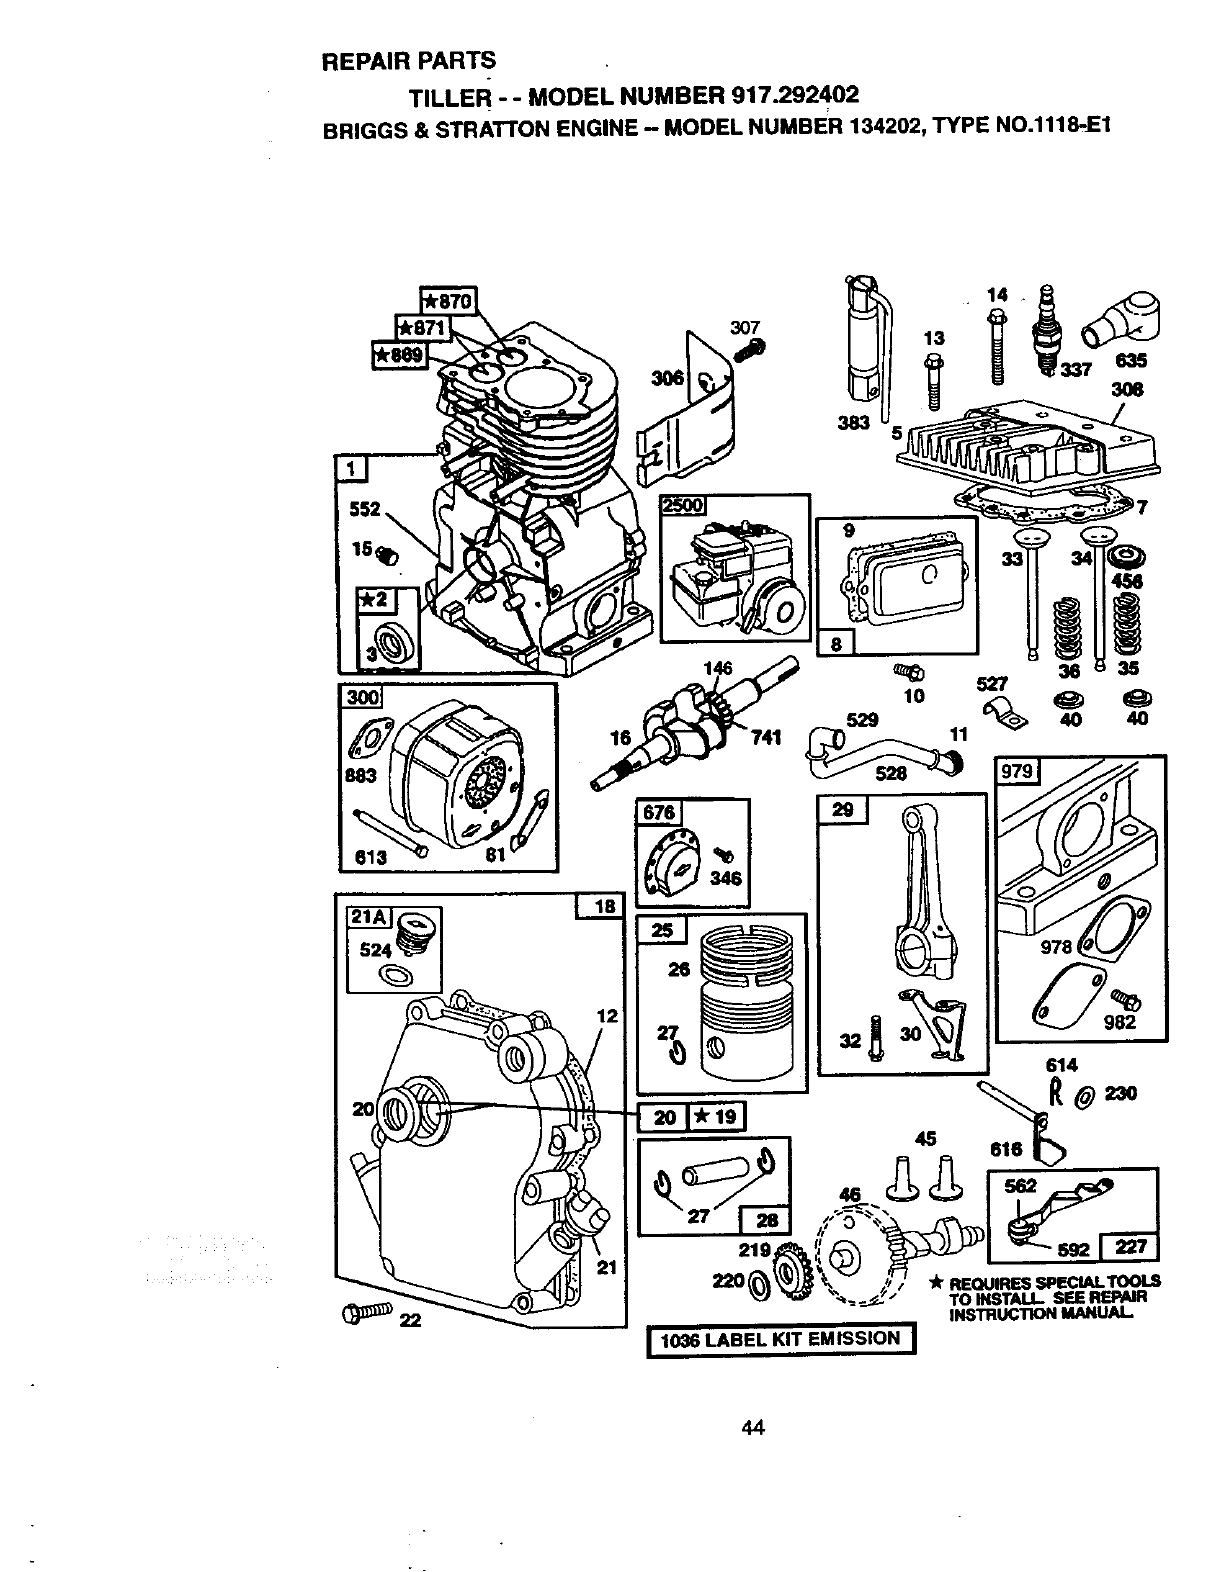 Page 25 of Craftsman Tiller 917.292402 User Guide